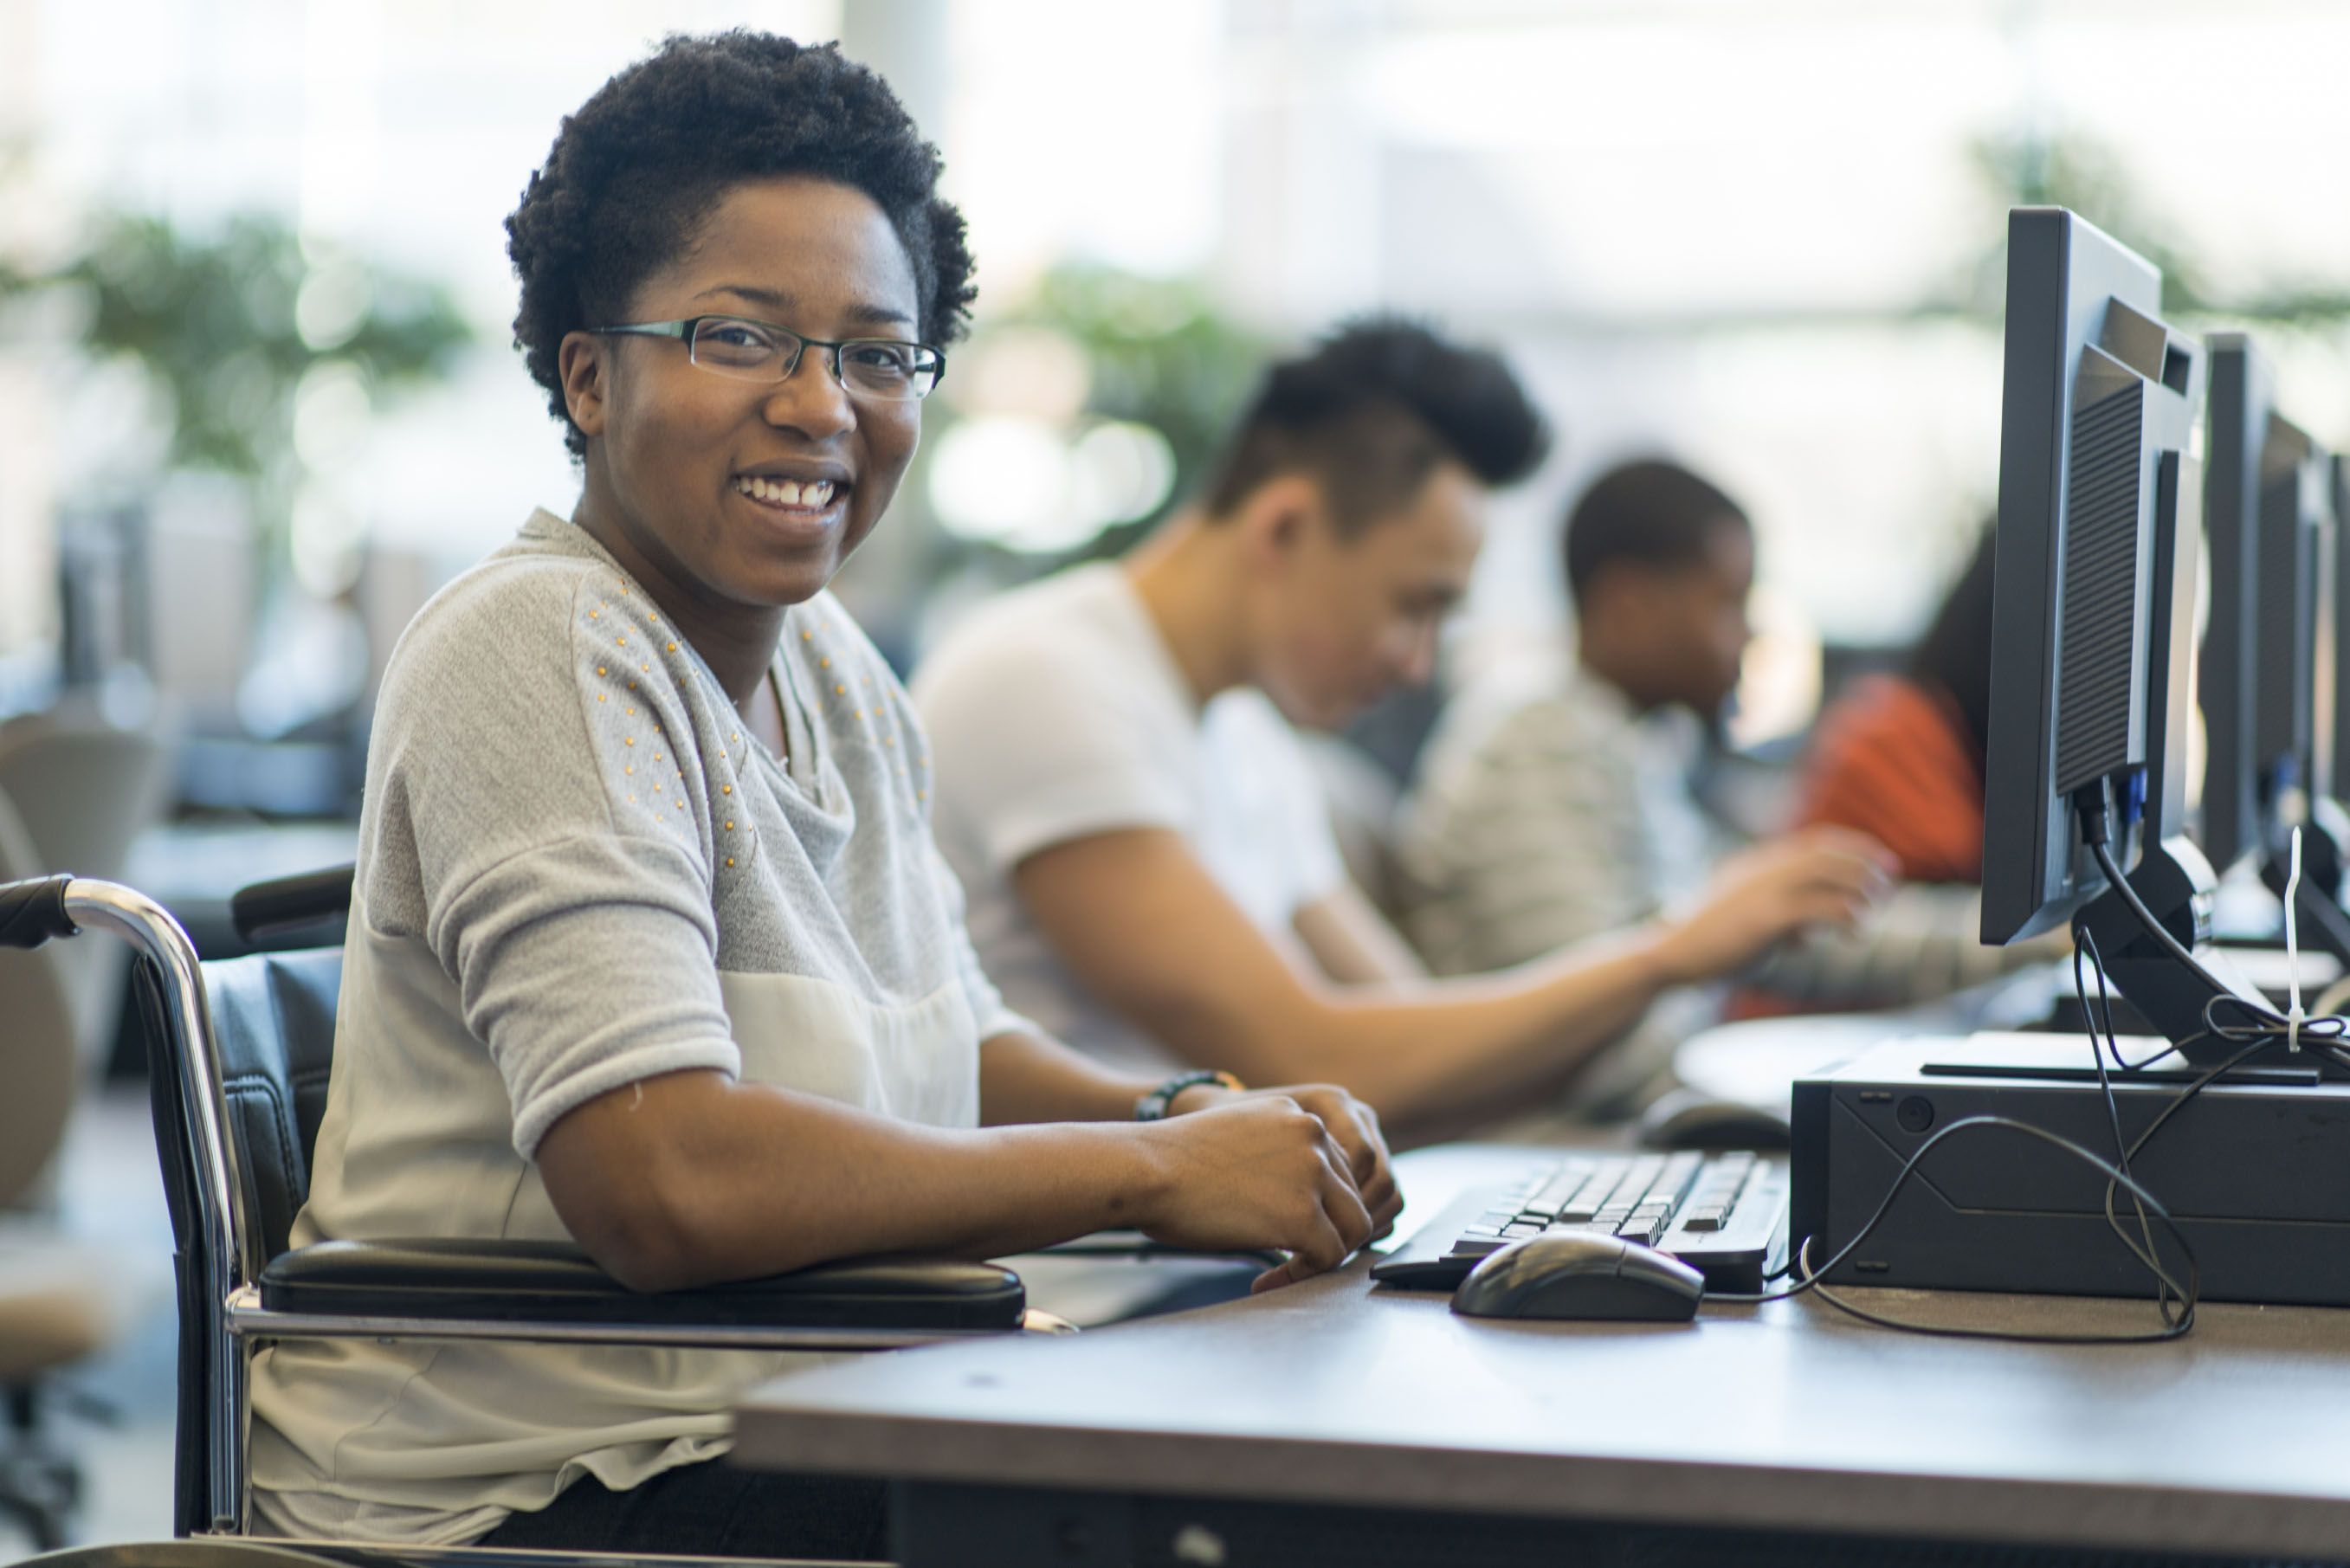 Students With Disabilities Meet Challenges in Online Courses  Online Colleges  US News